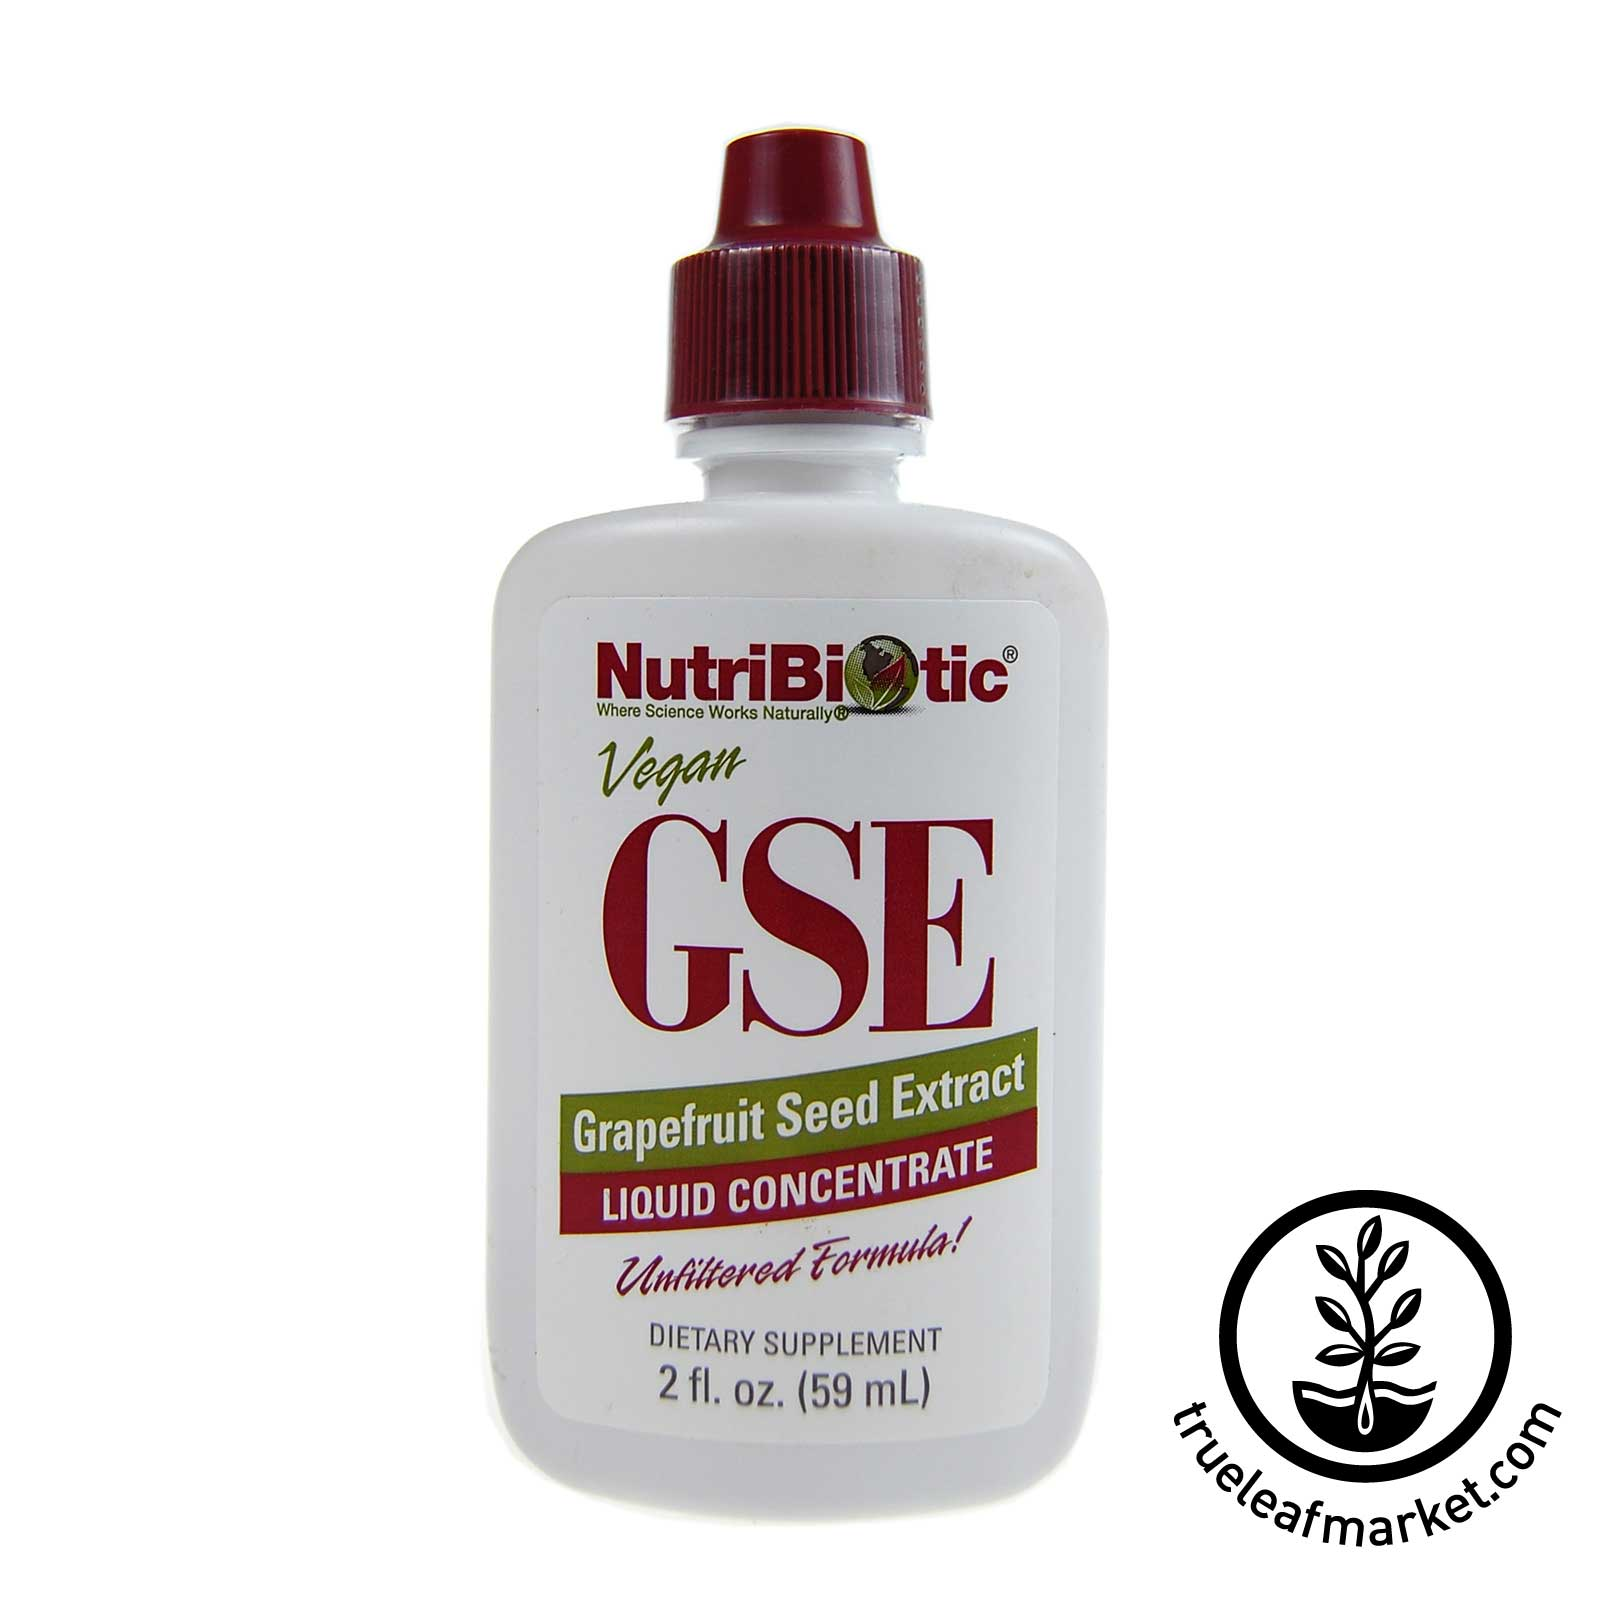 2 oz. GSE Liquid Grapefruit Seed Extract by NutriBiotic - For wheatgrass mold control